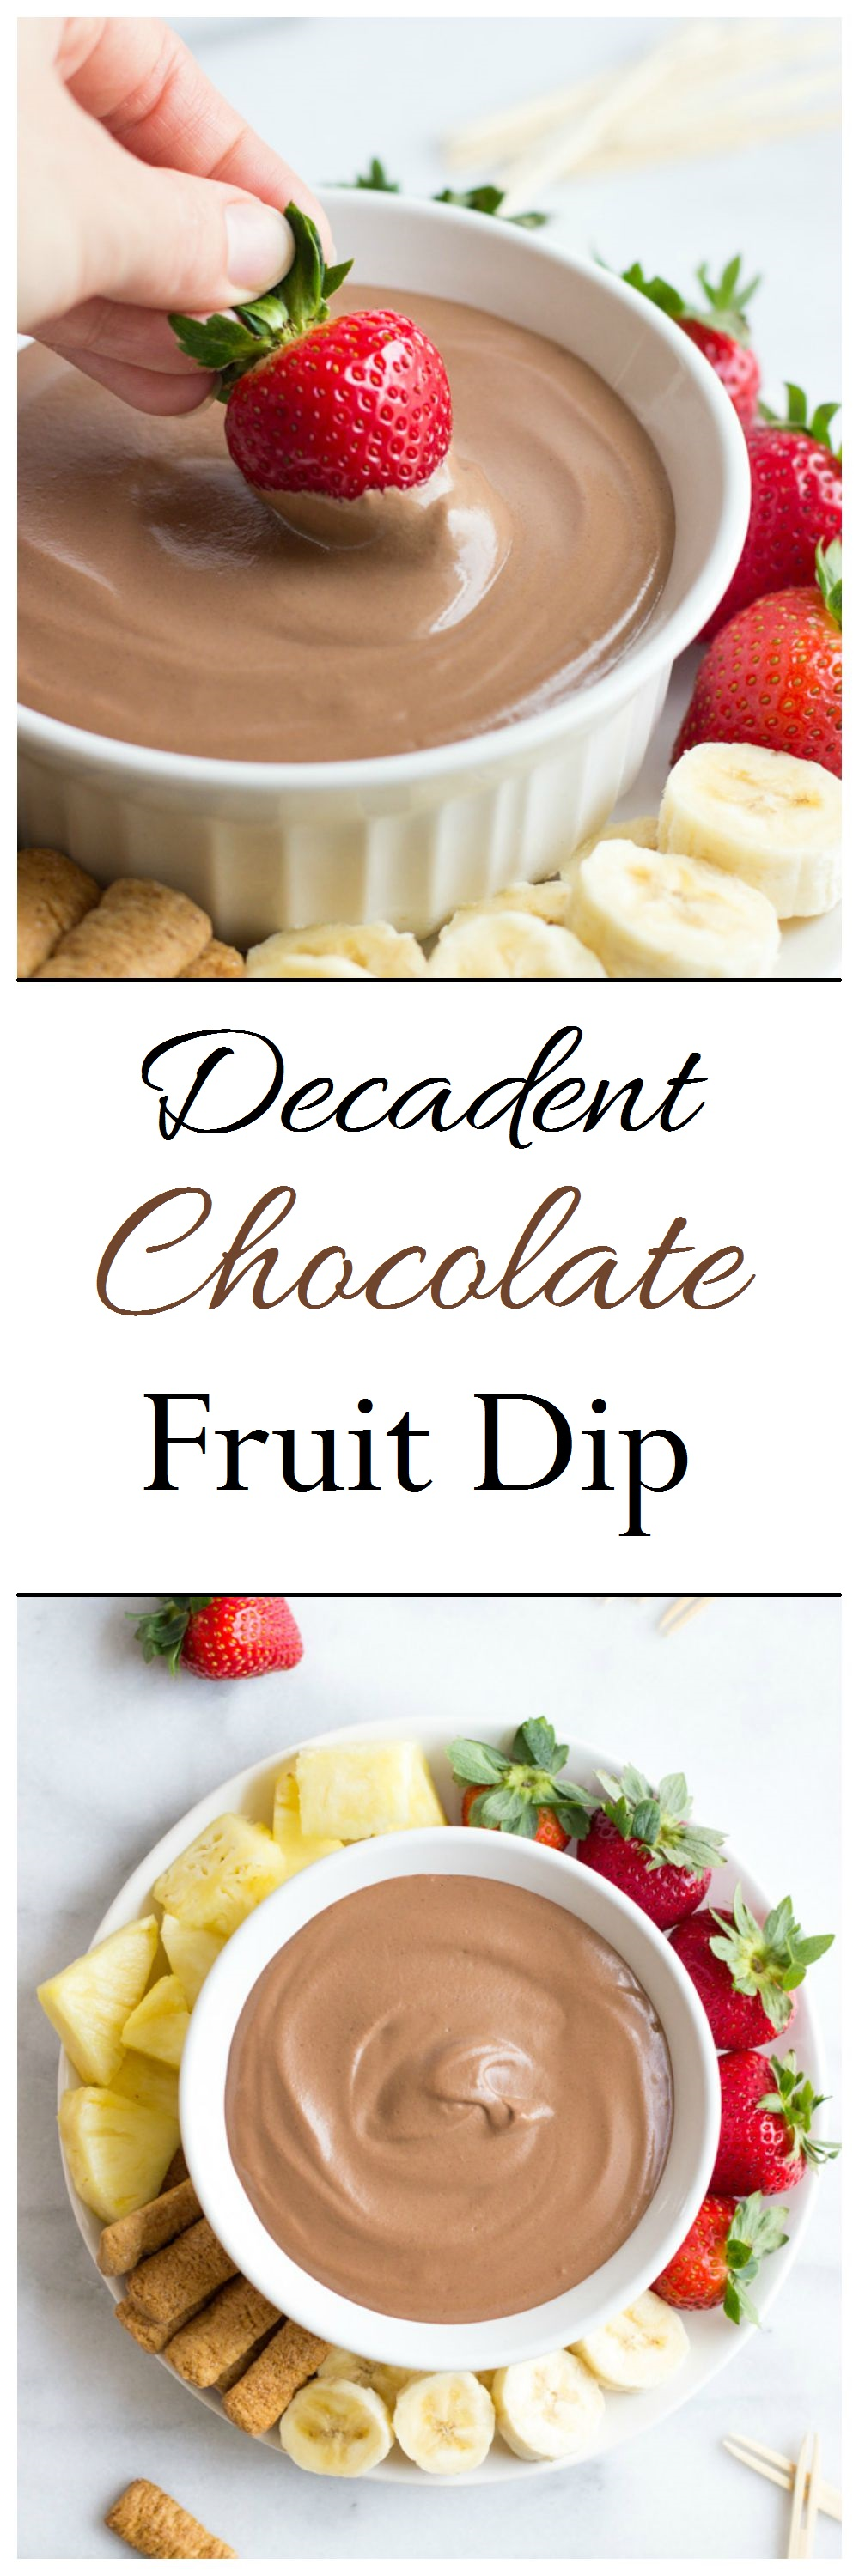 5 Minute Decadent Chocolate Fruit Dip-smooth as silk and dairy-free! #cleaneating #vegan #paleo